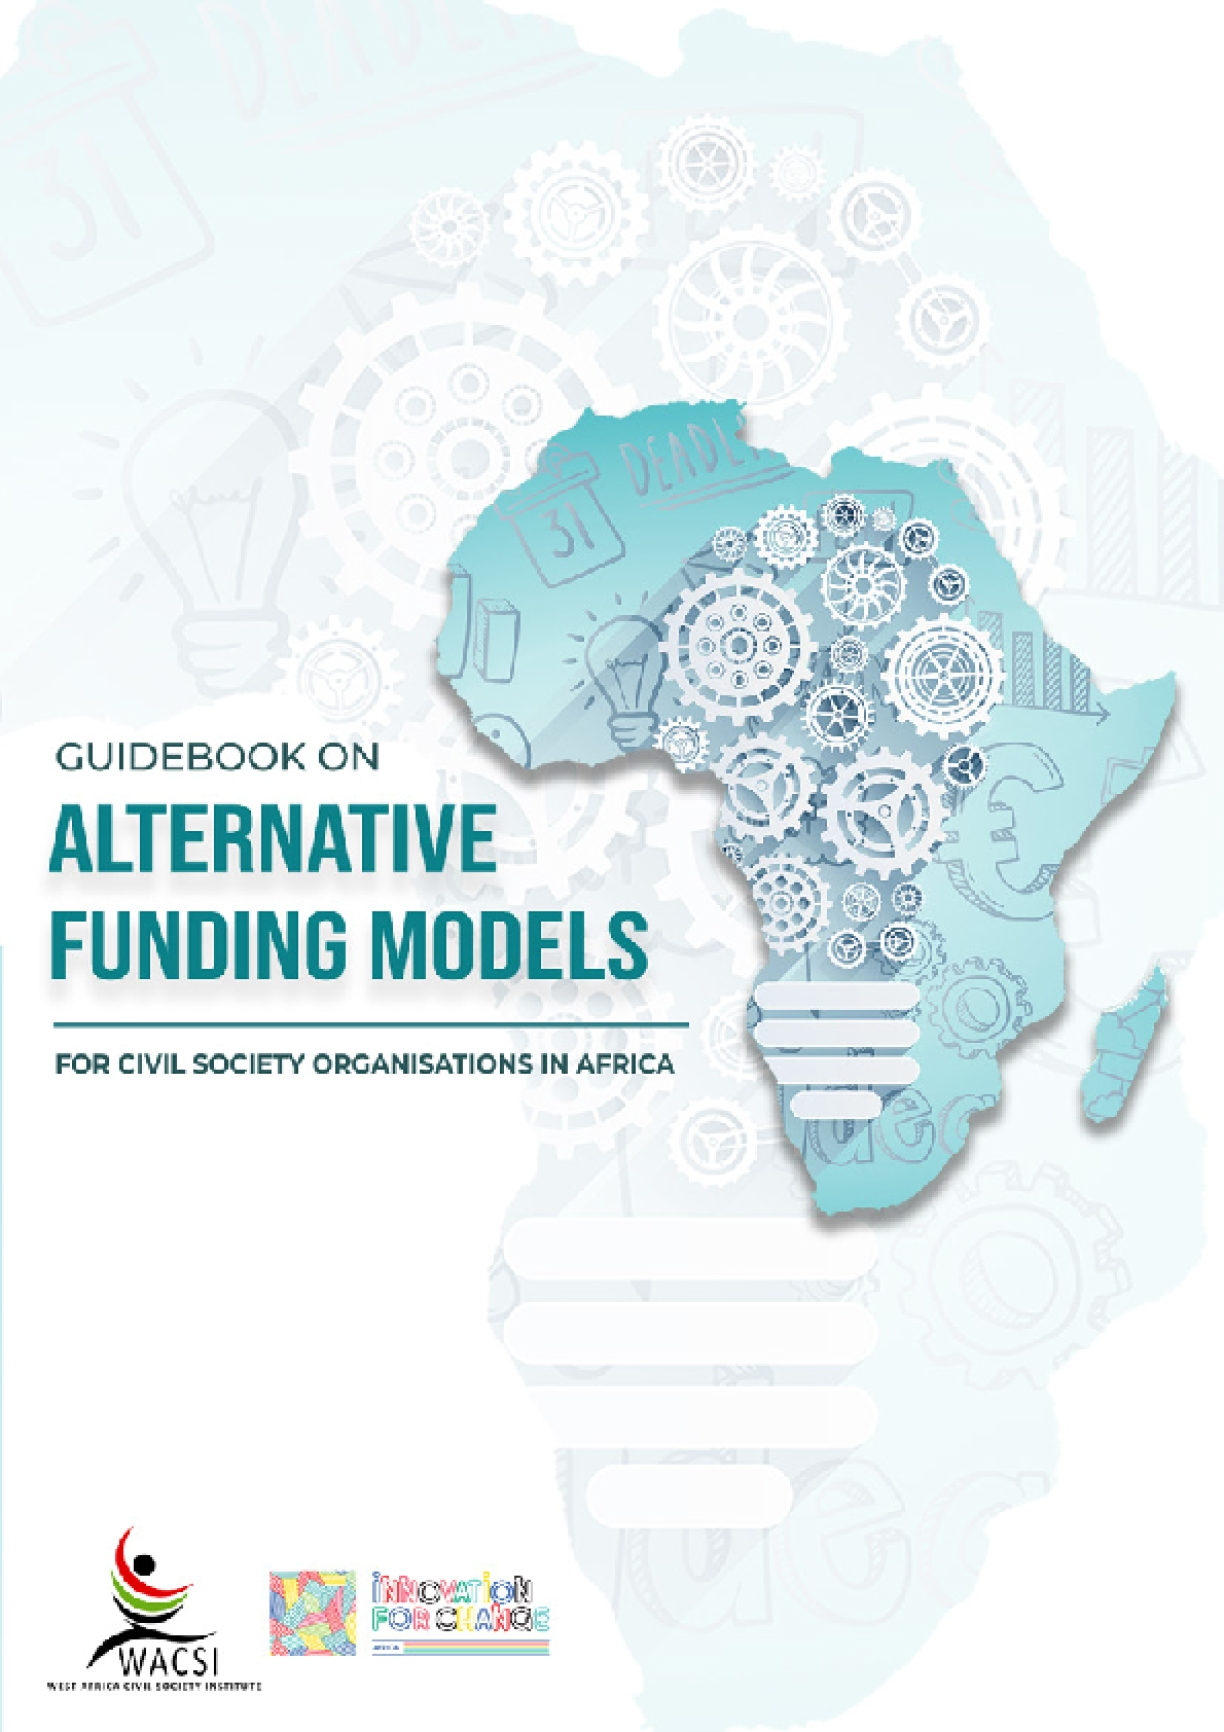 Guidebook on Alternative Funding Models for Civil Society Organisations in Africa